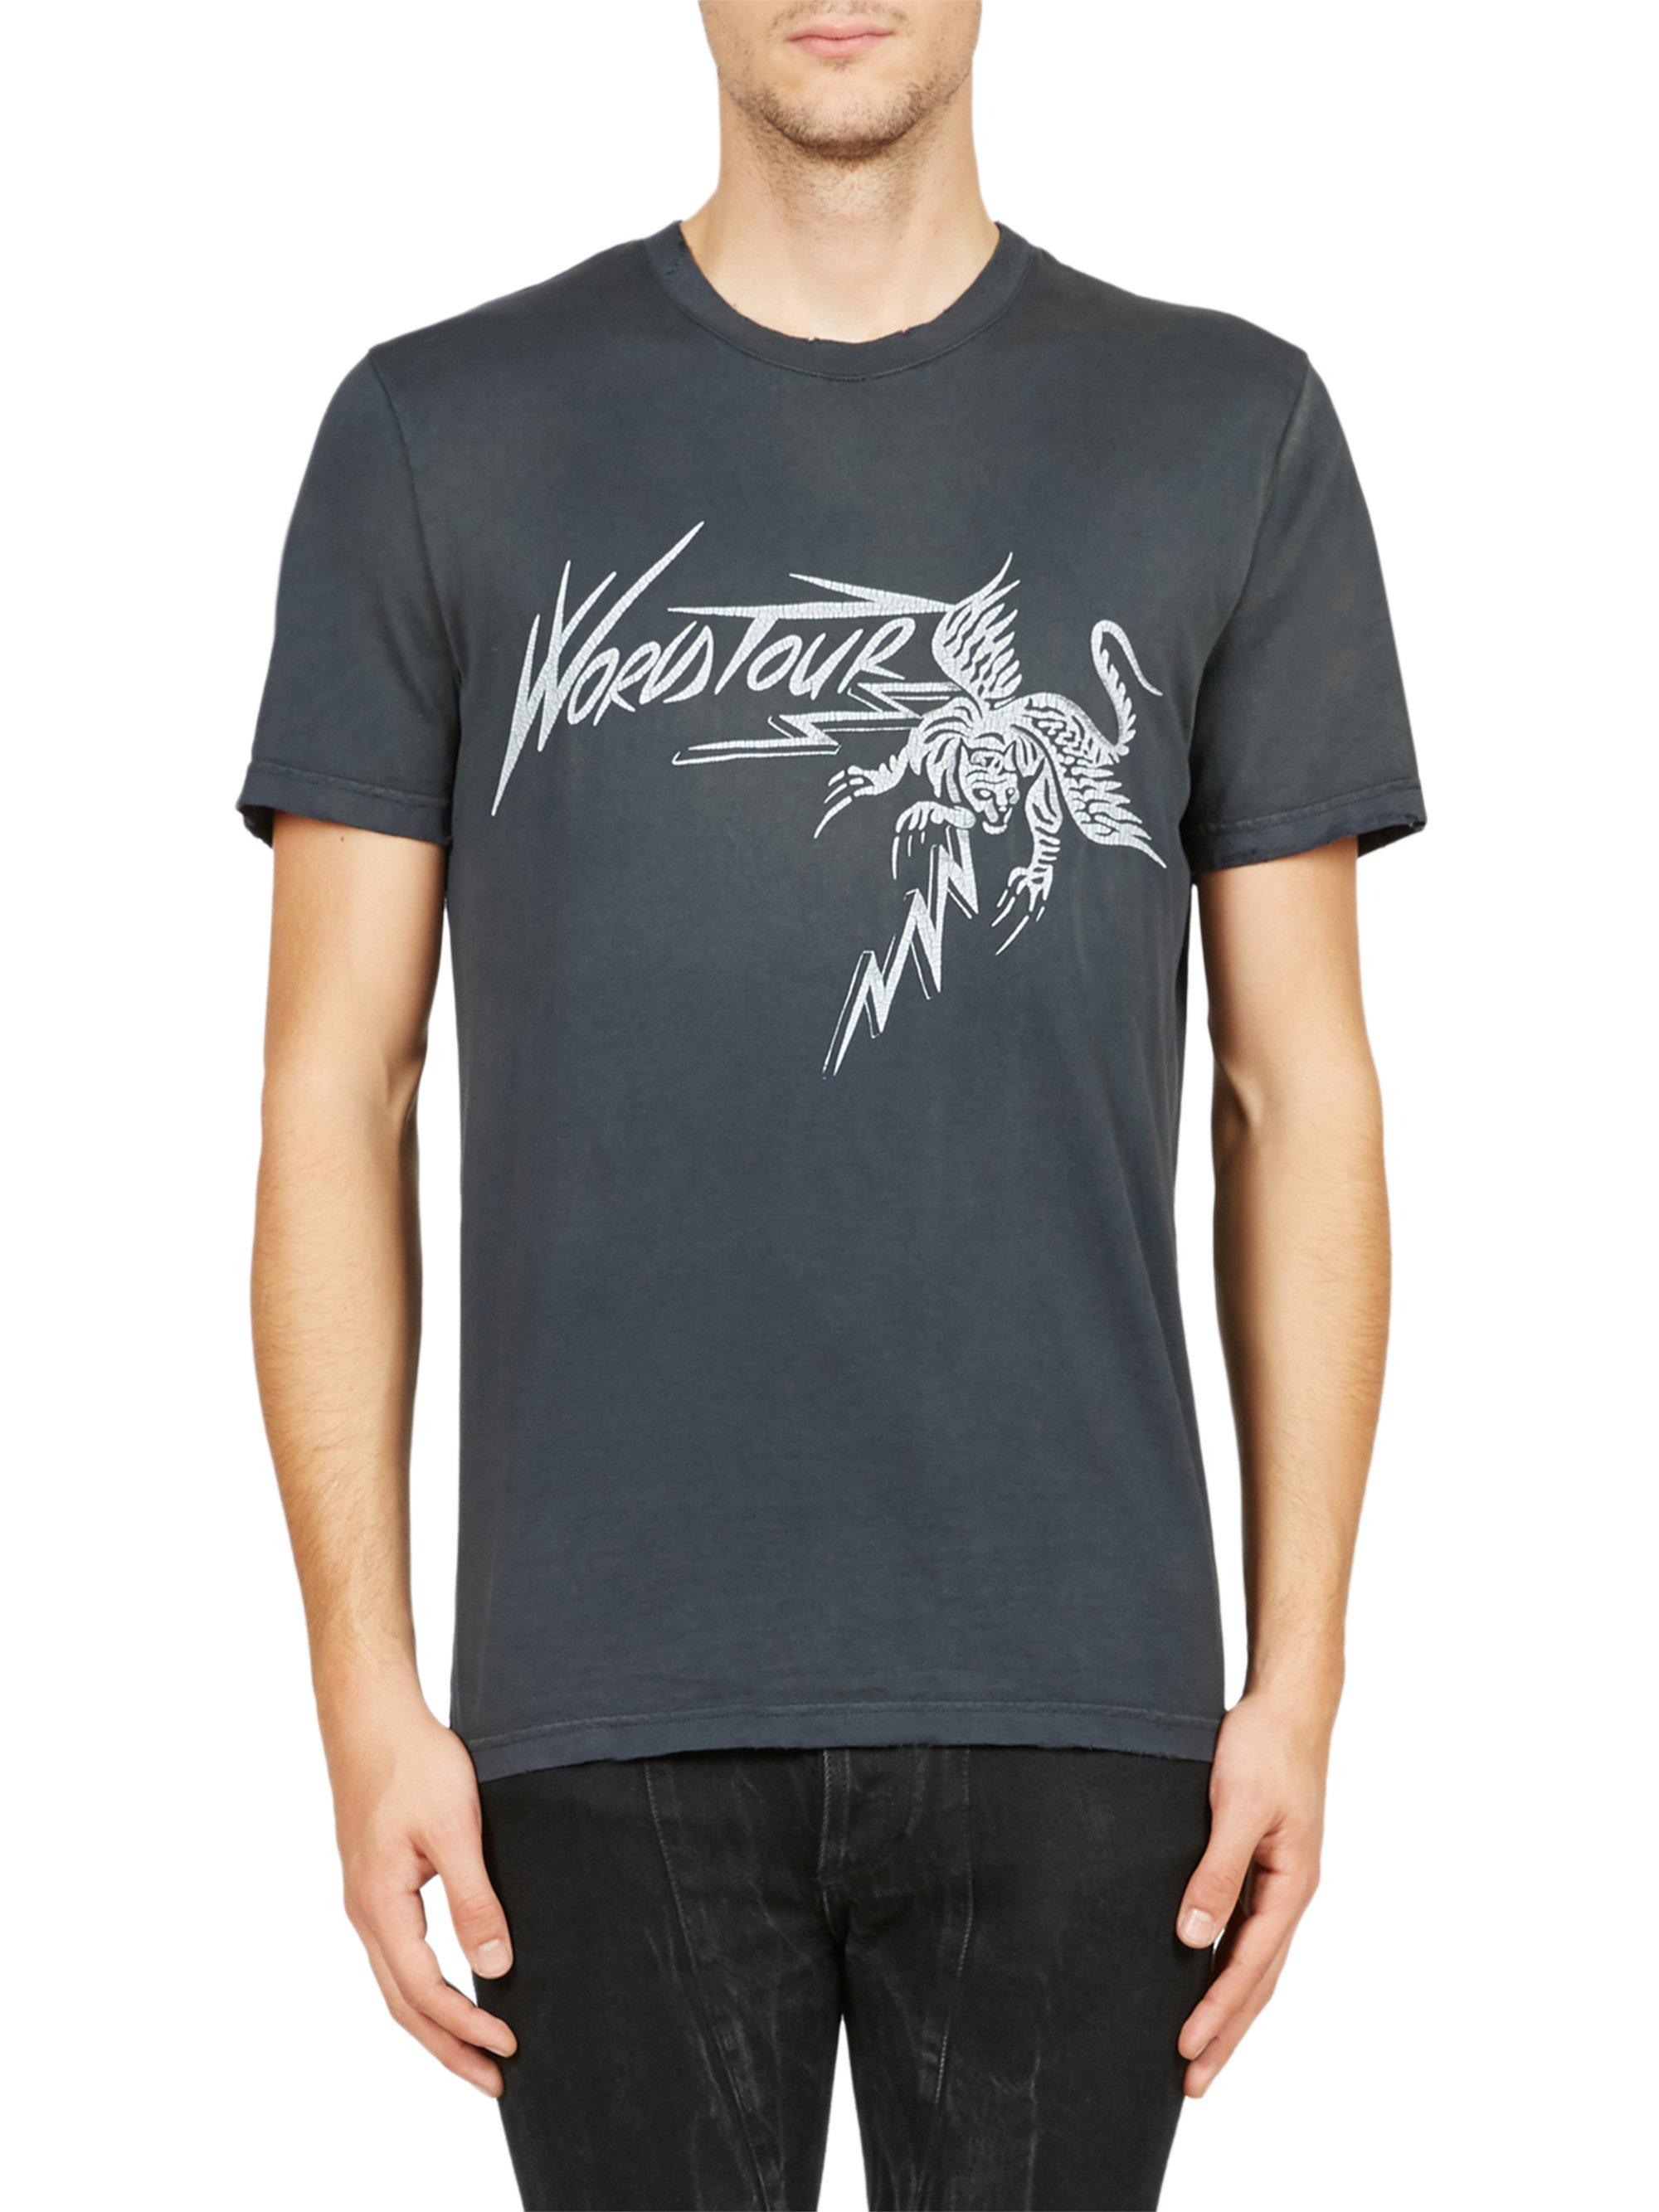 oversized World Tour T-shirt - Black Givenchy For Cheap Cheap Online oyGiI22